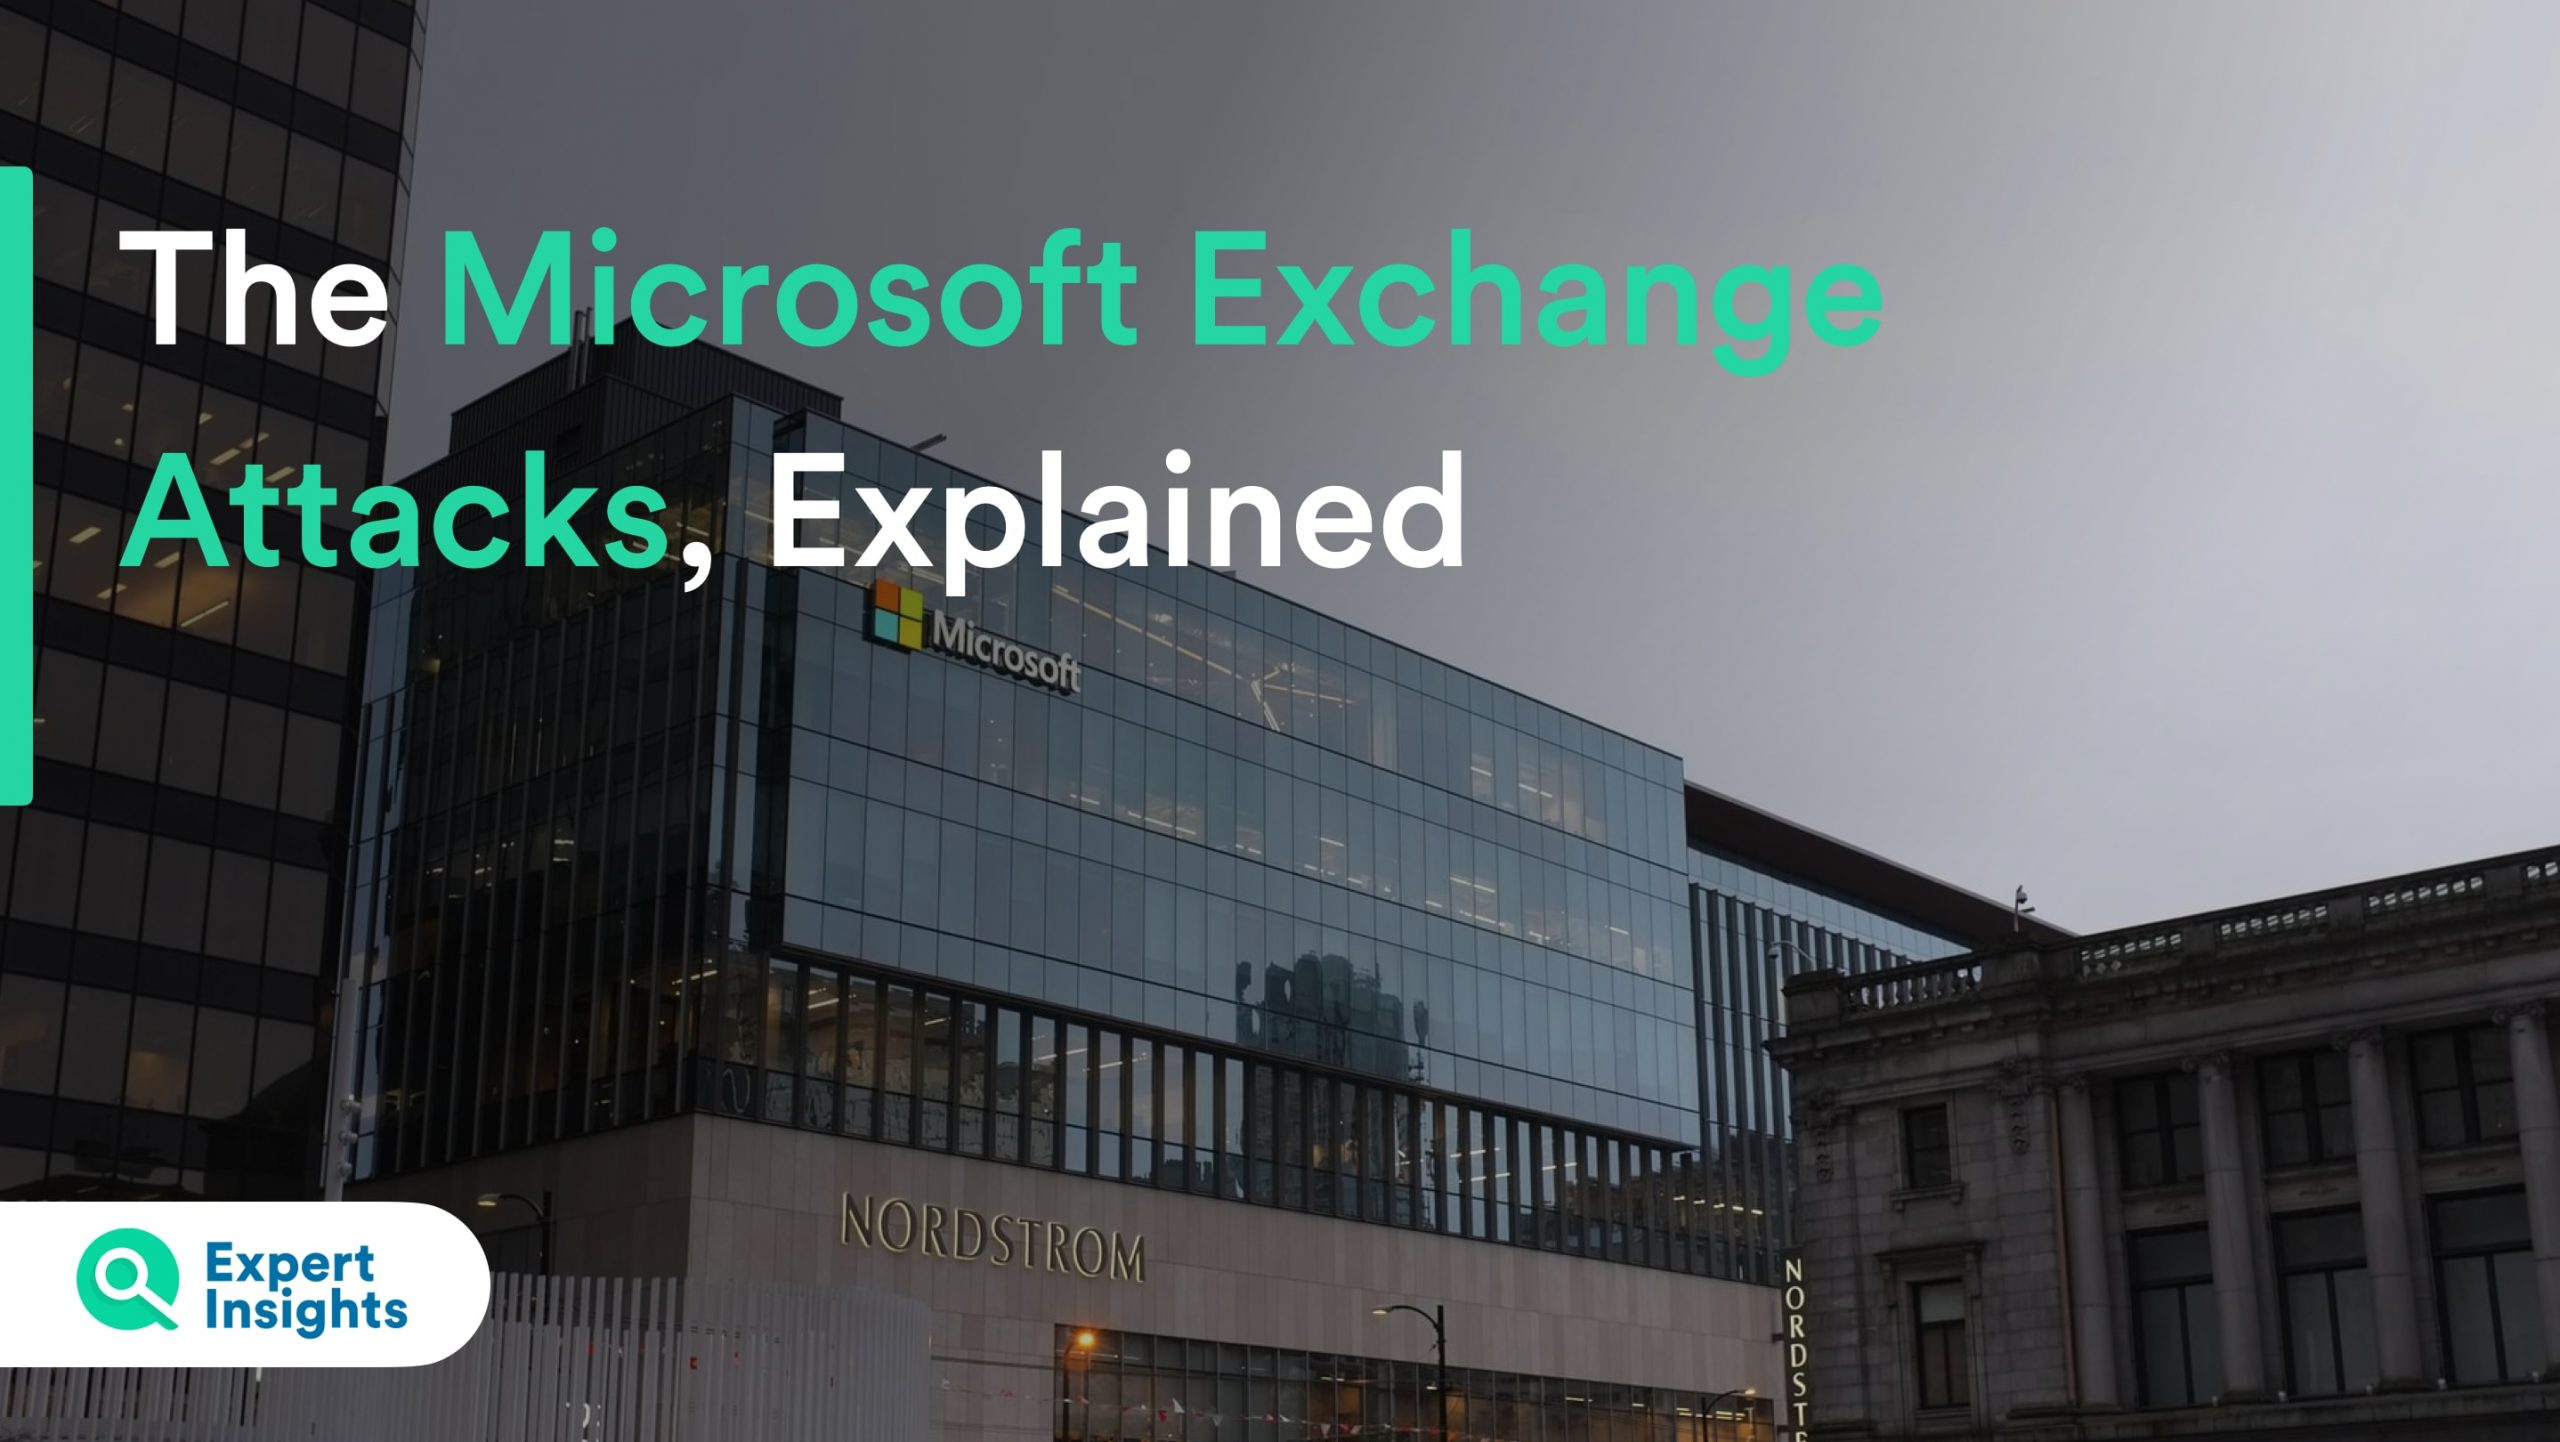 The Microsoft Exchange Attacks, Explained – Expert Insights